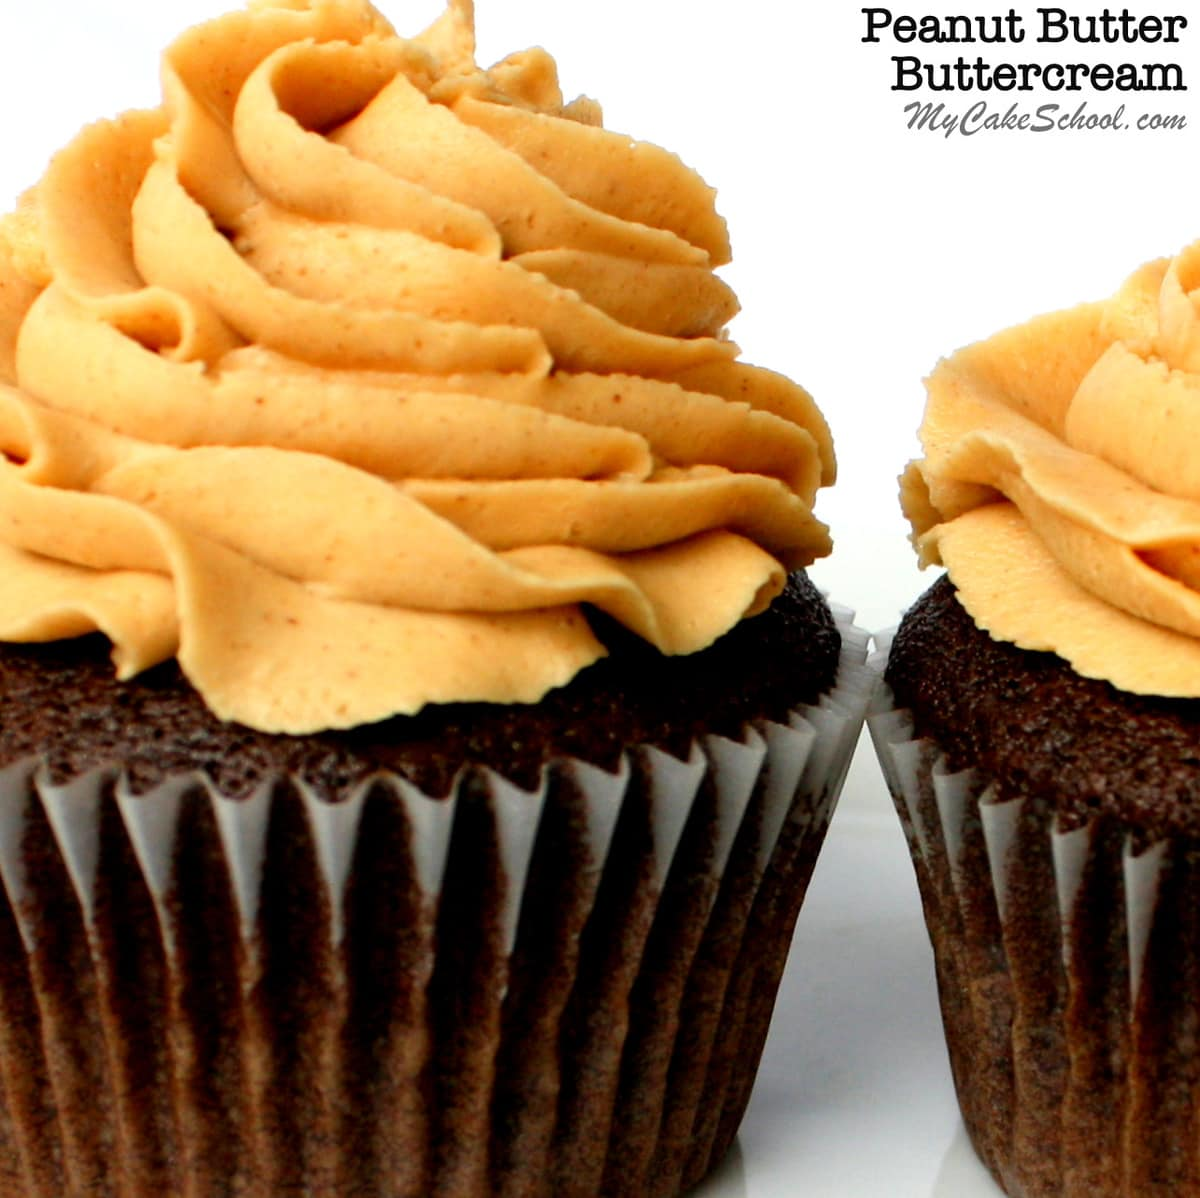 The BEST Peanut Butter Buttercream Frosting Recipe by MyCakeSchool.com! So good as a filling and frosting for chocolate cakes and cupcakes! My Cake School Cake Recipes, Cake Videos, Cake Tutorials, and more!